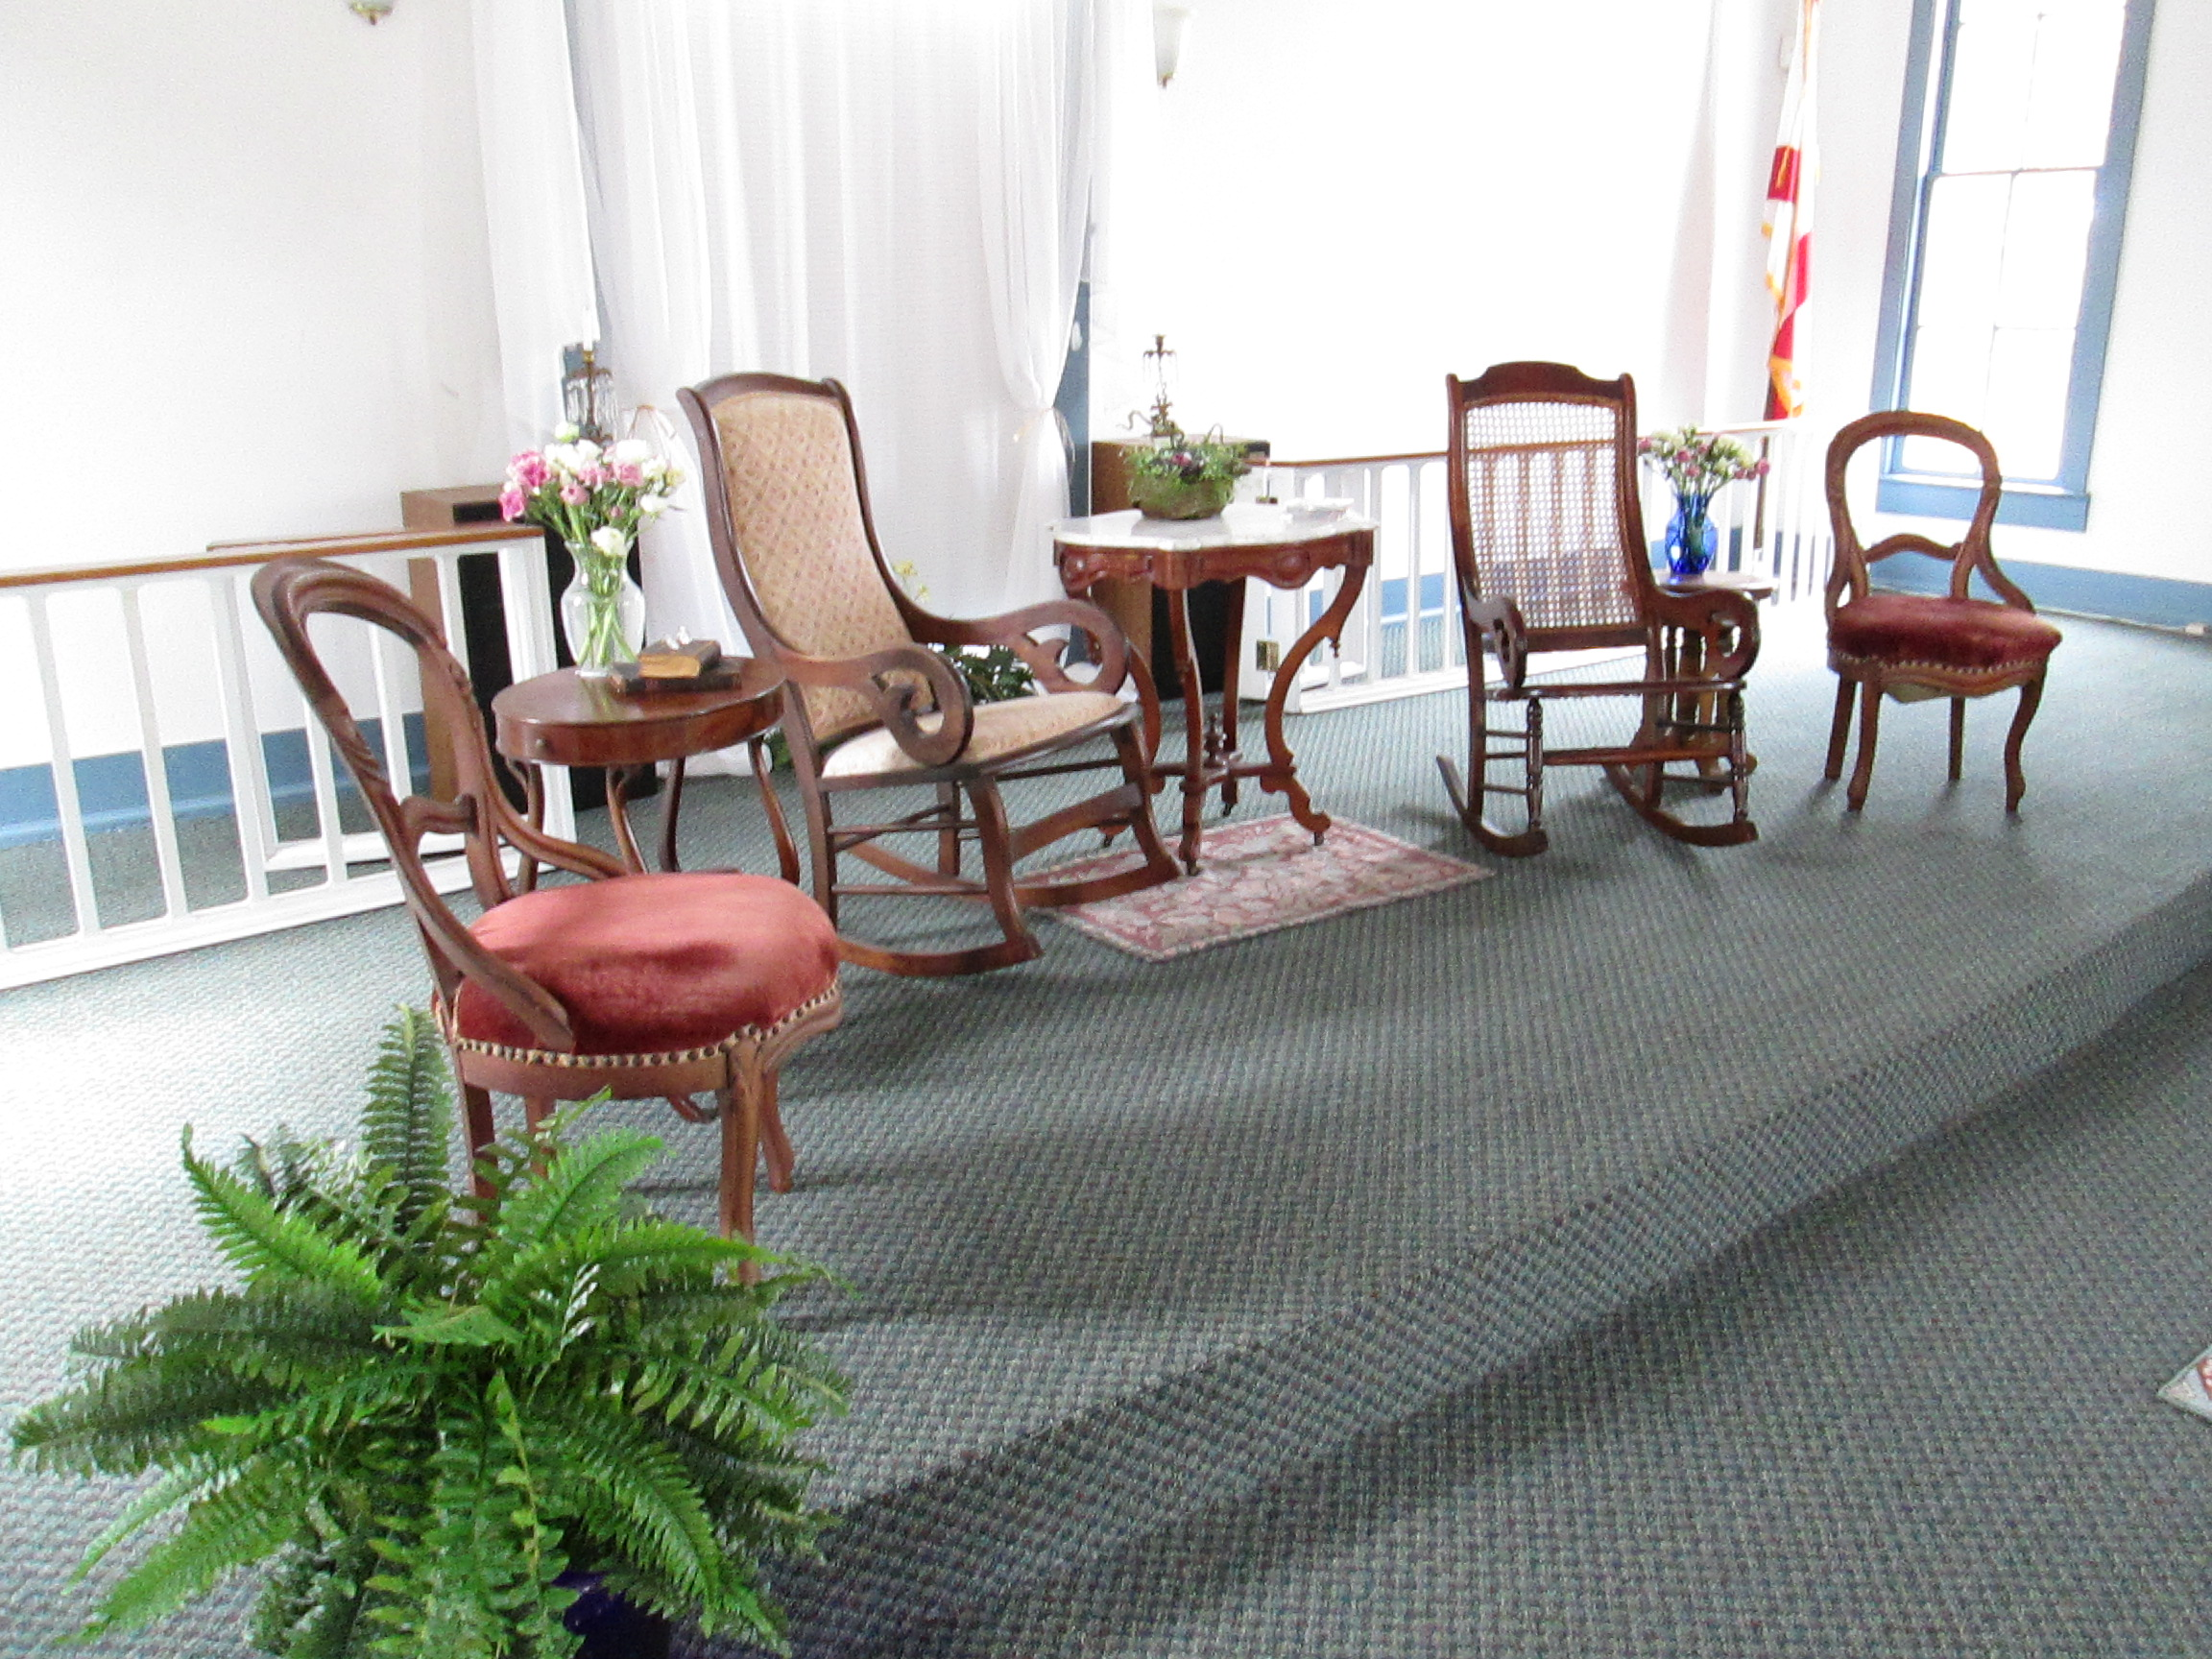 The Historical Society of Sarasota County will be back soon with Conversations at the Crocker.